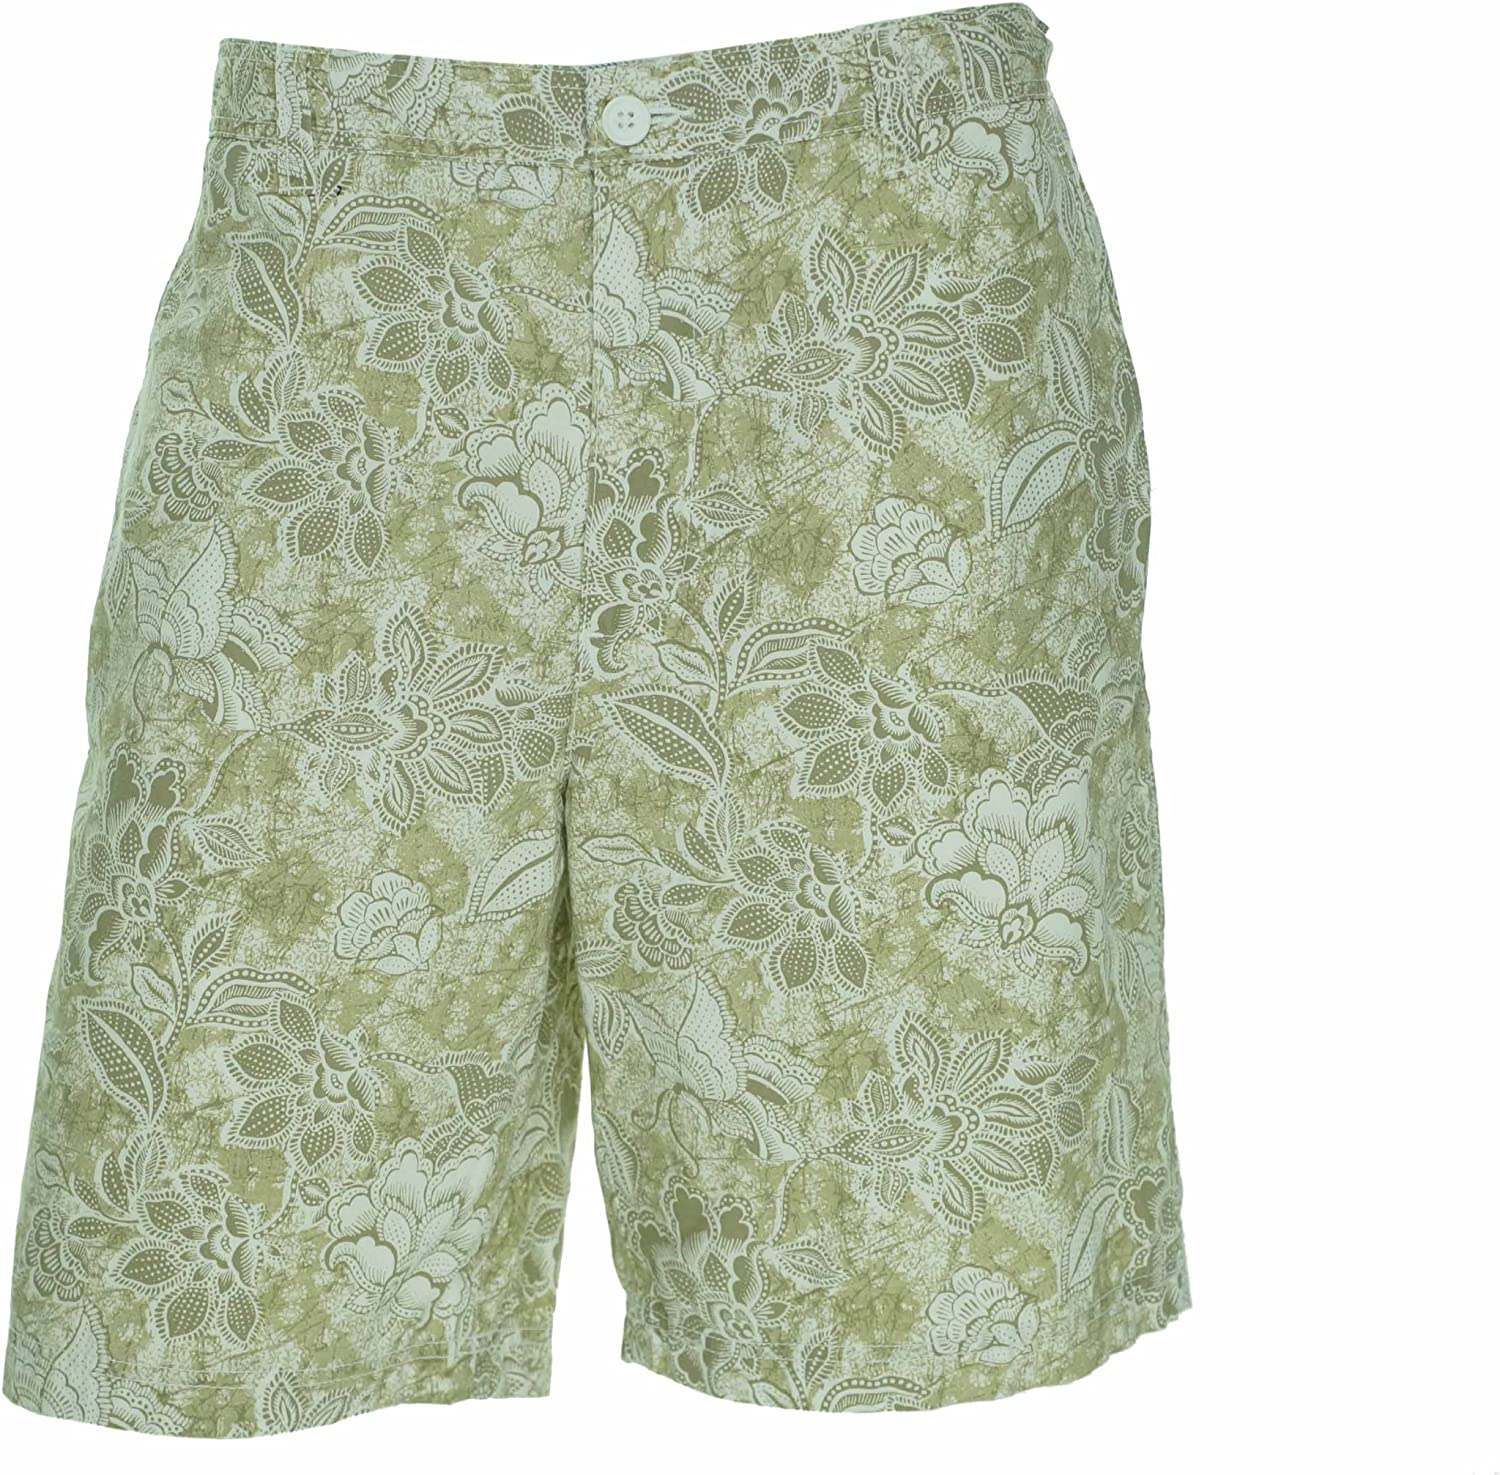 Club Room Mens Ethnic Printed Flat Front Shorts